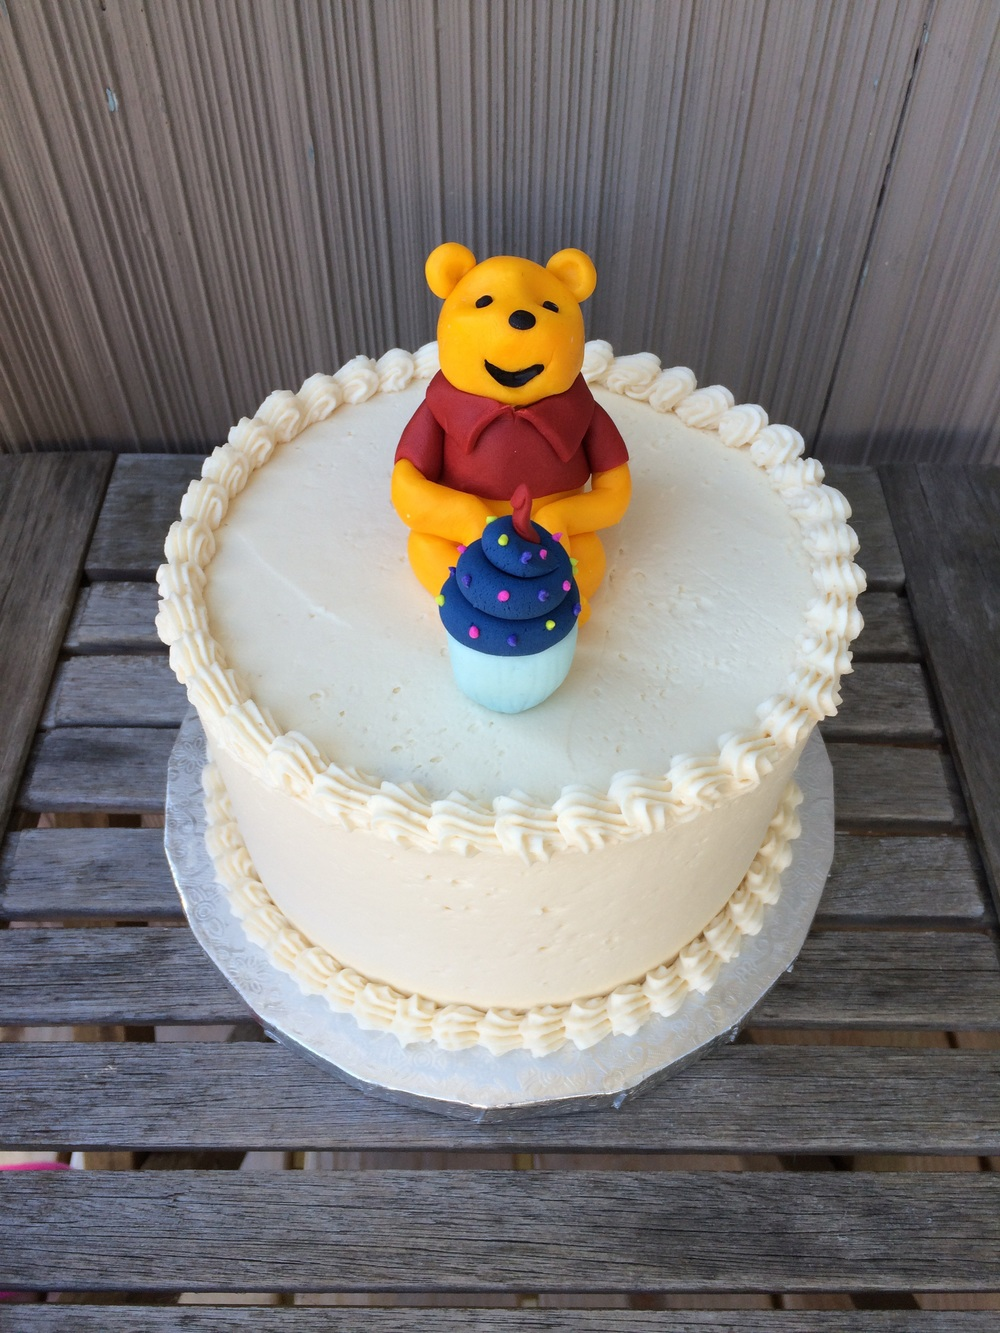 Winnie the Pooh cake for a first birthday